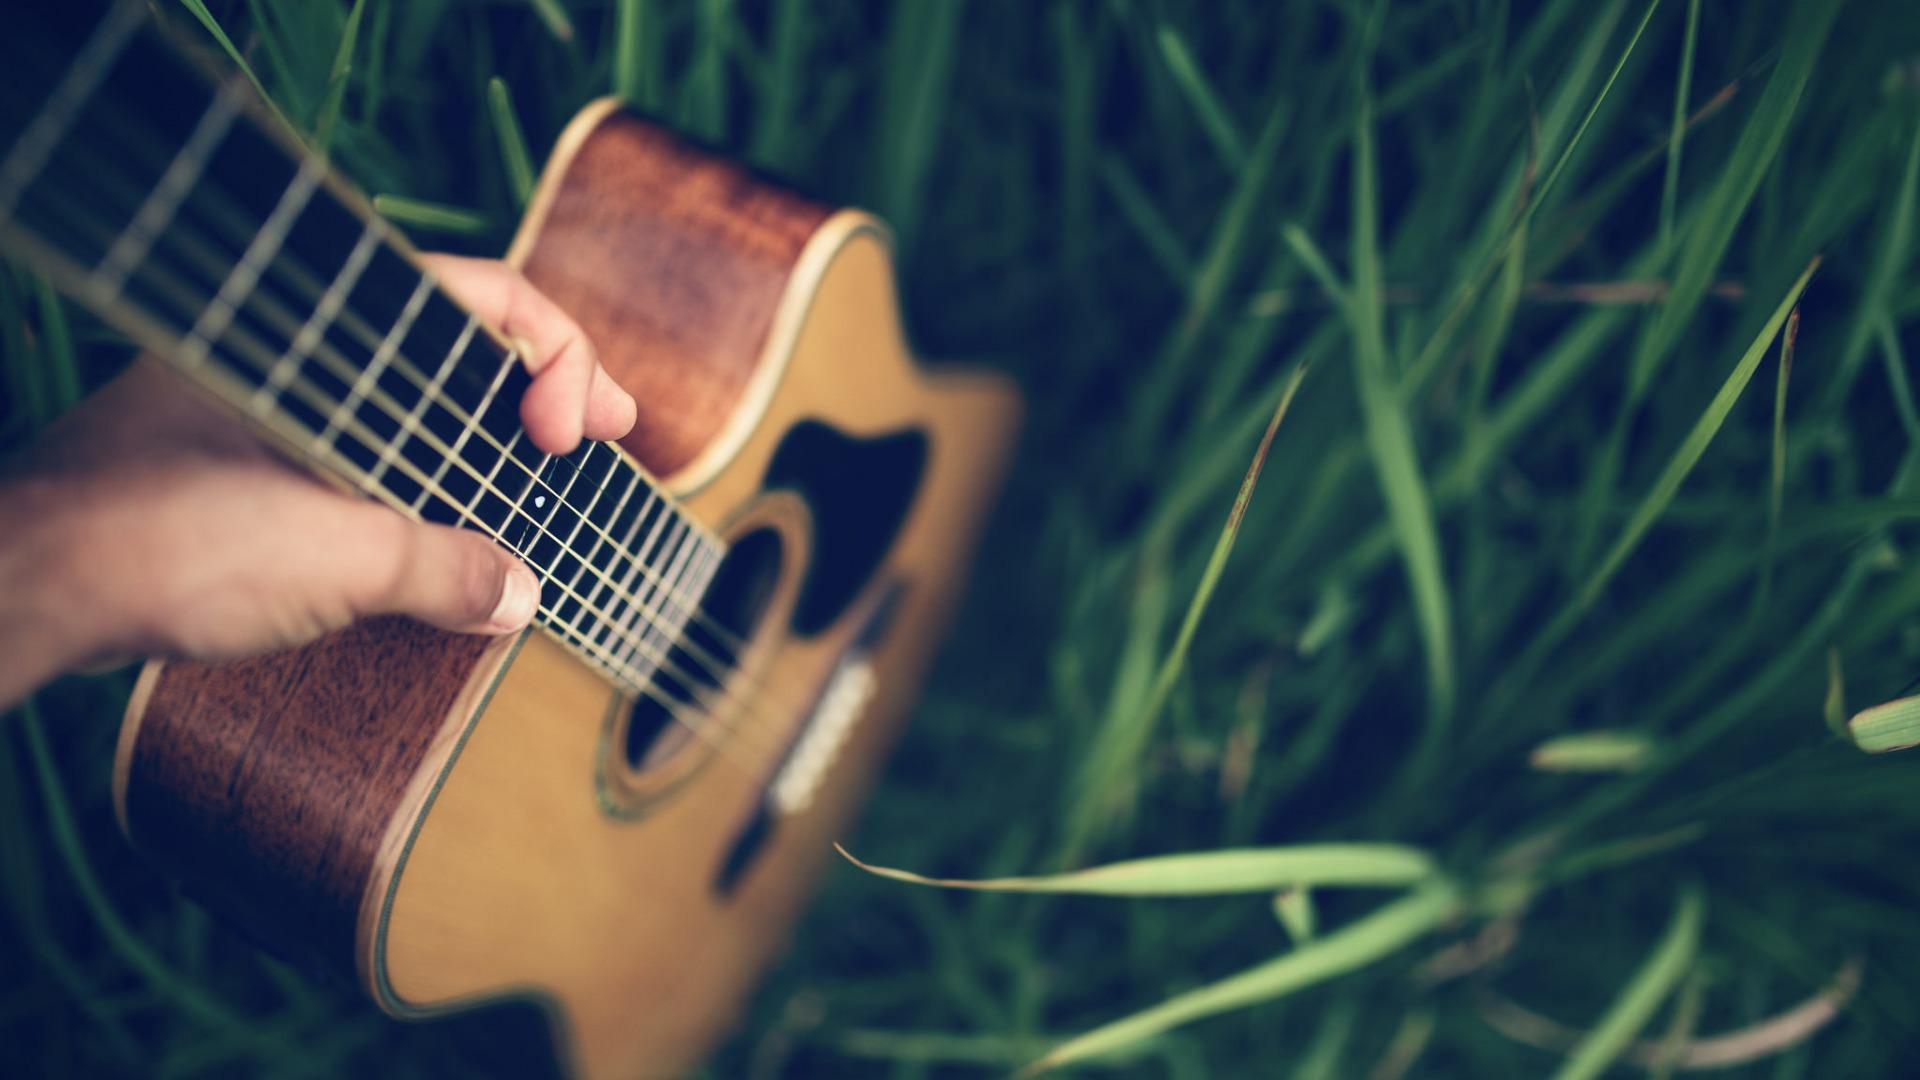 Acoustic Guitar HD Wallpaper 58783 1920x1080 px HDWallSourcecom